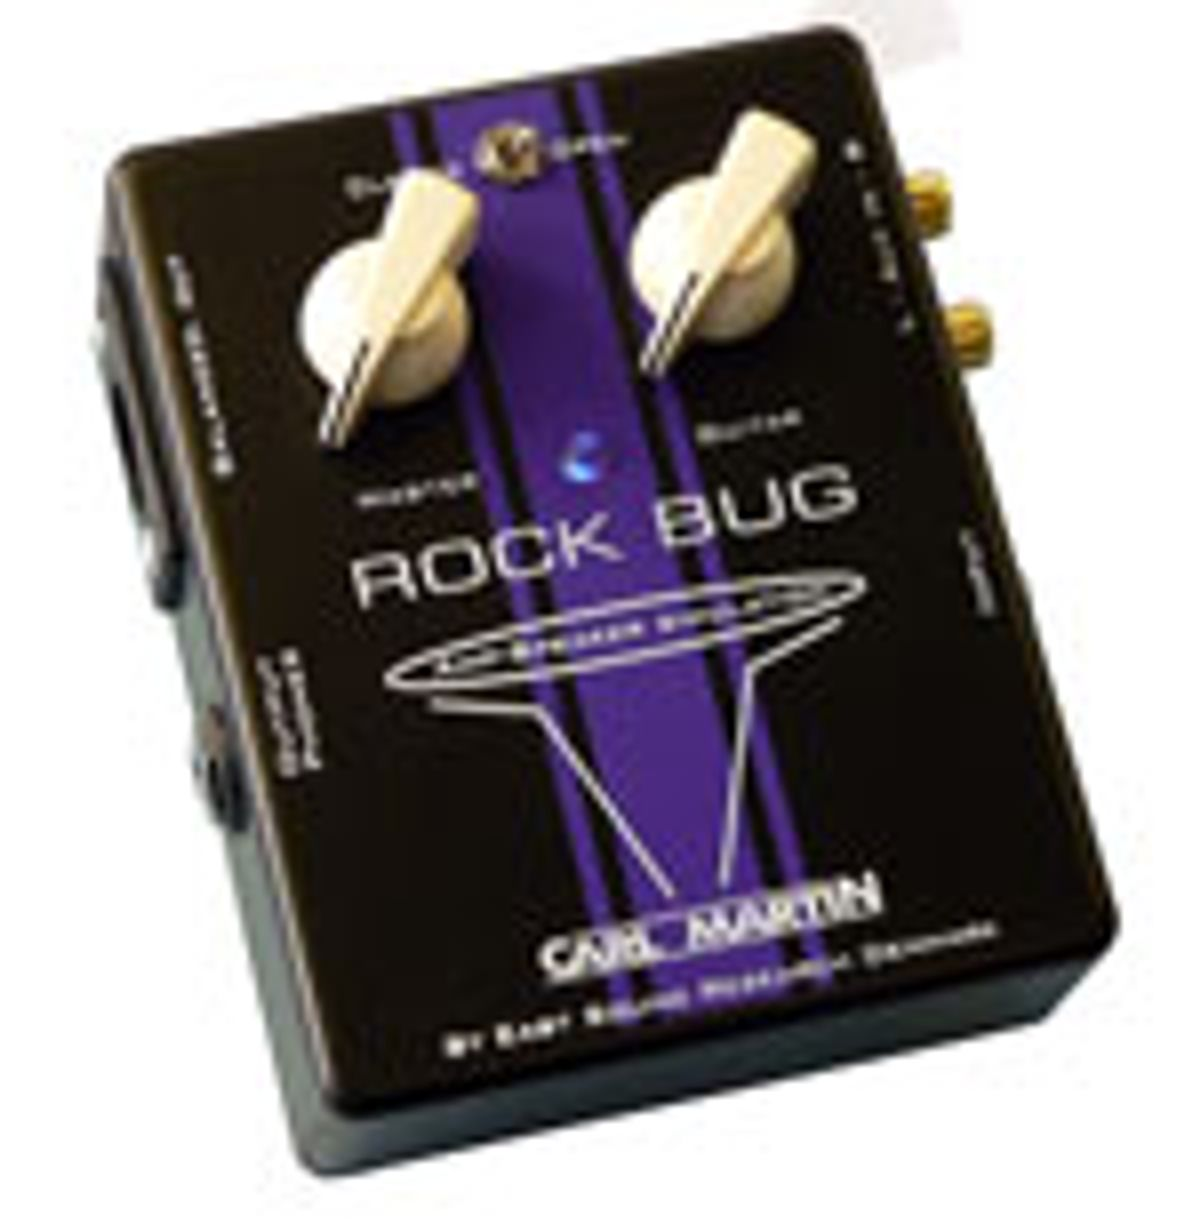 Carl Martin Introduces New Effects